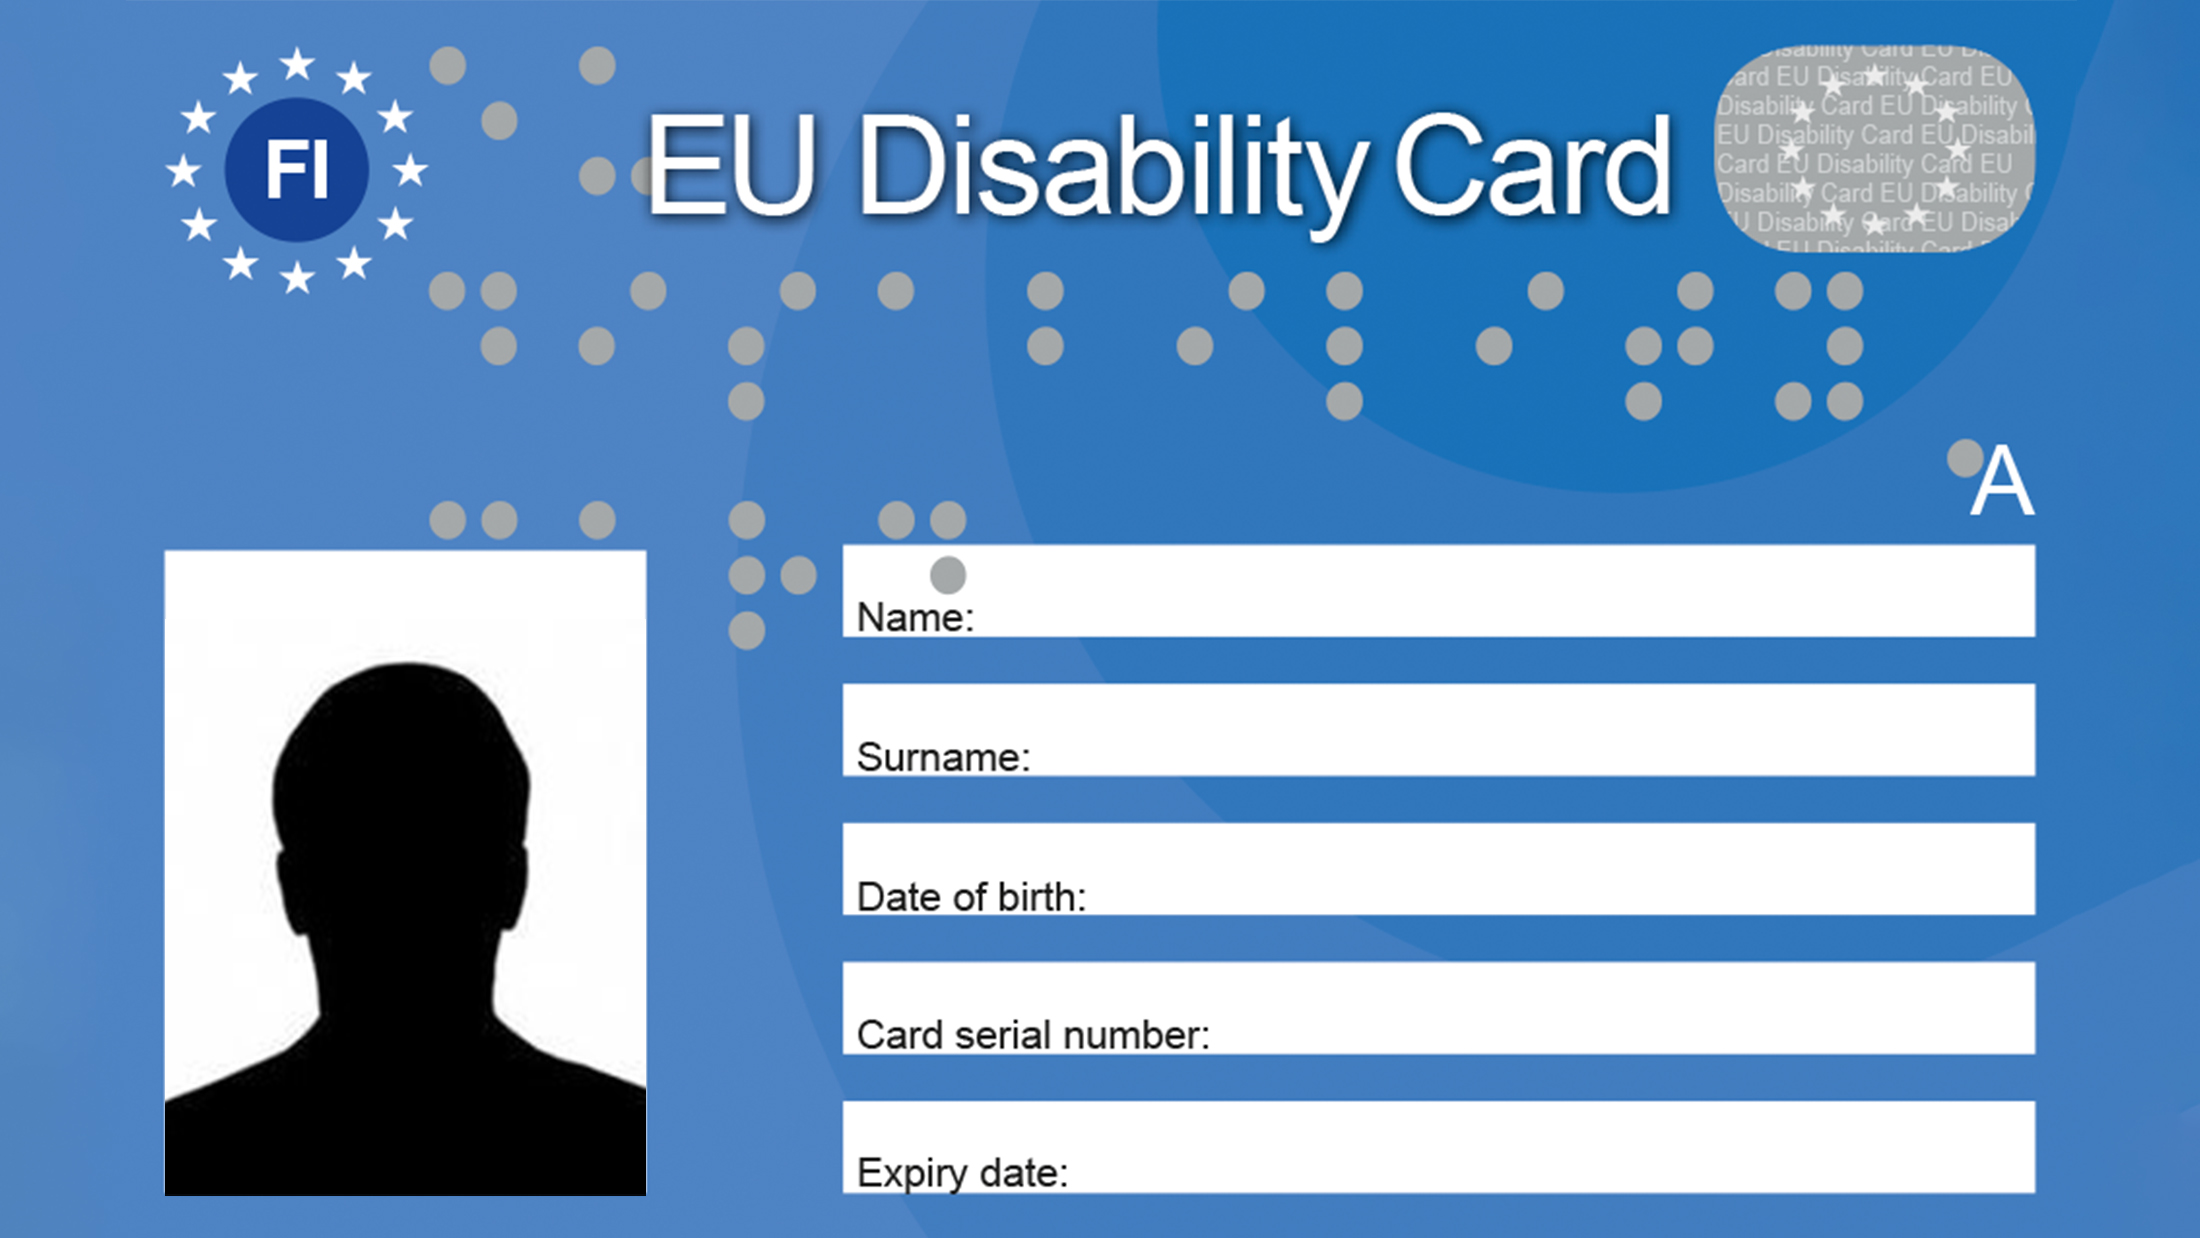 EU-disability-card-model